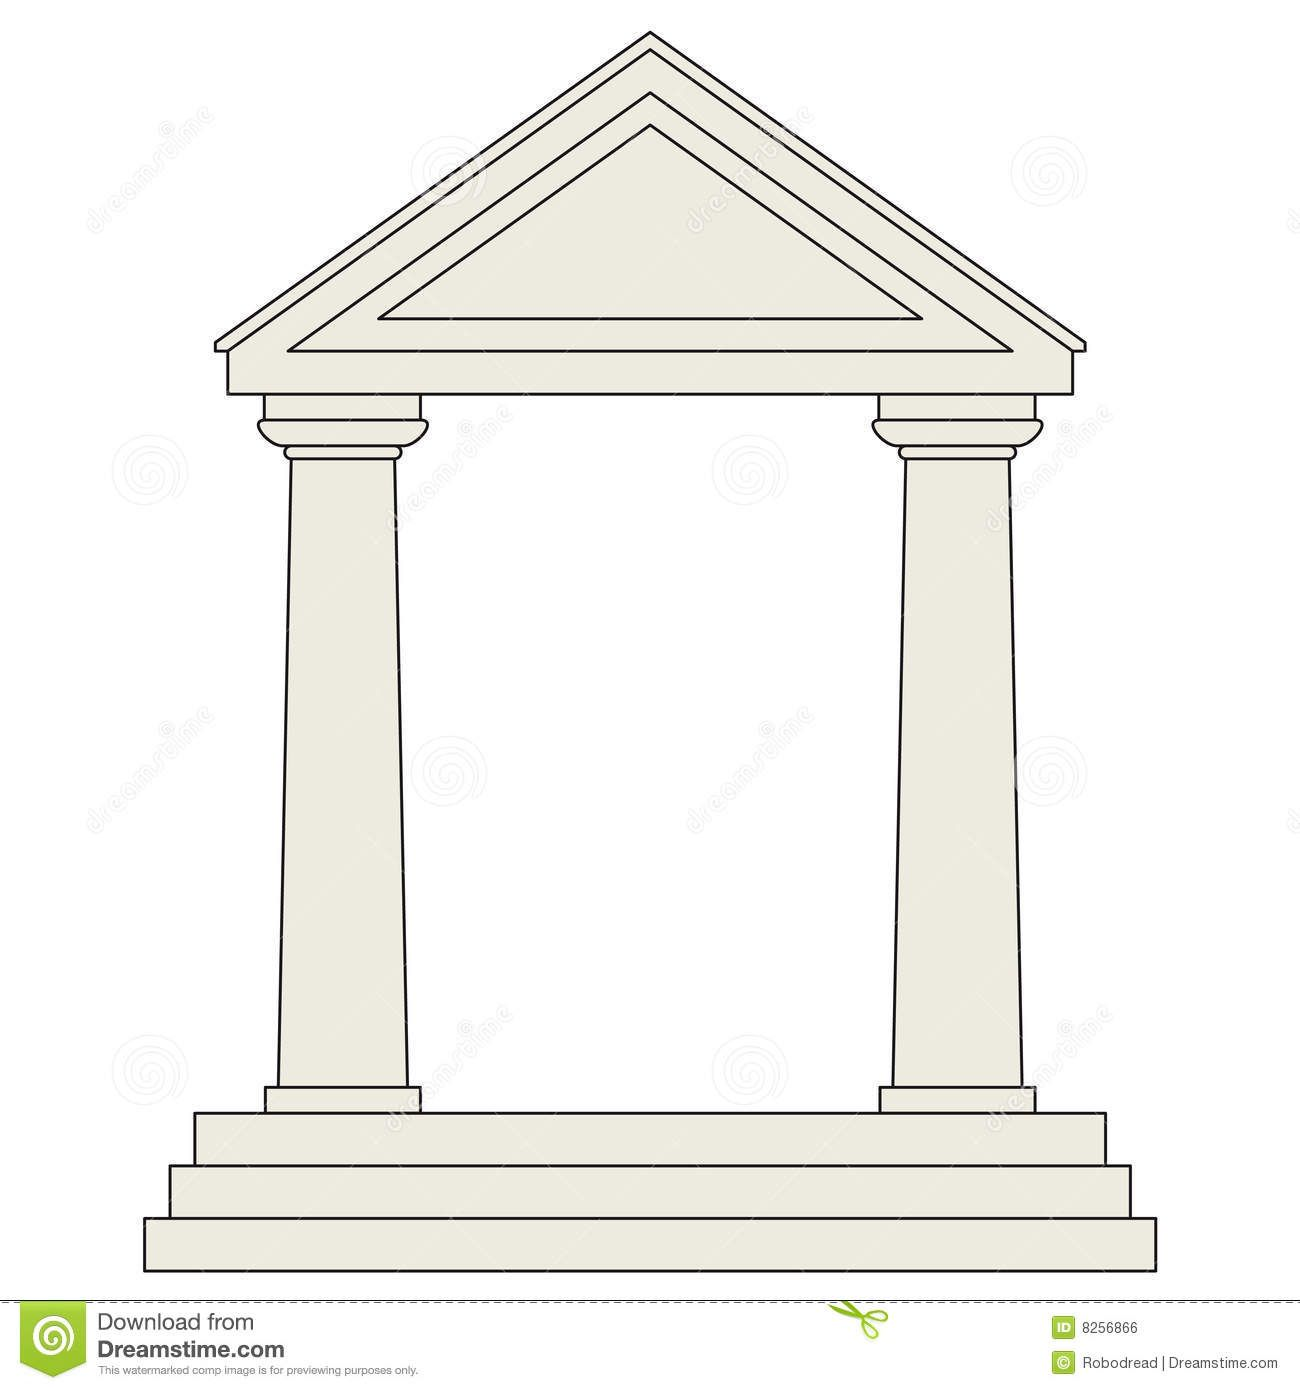 Temples google search classroom. Greece clipart greek building